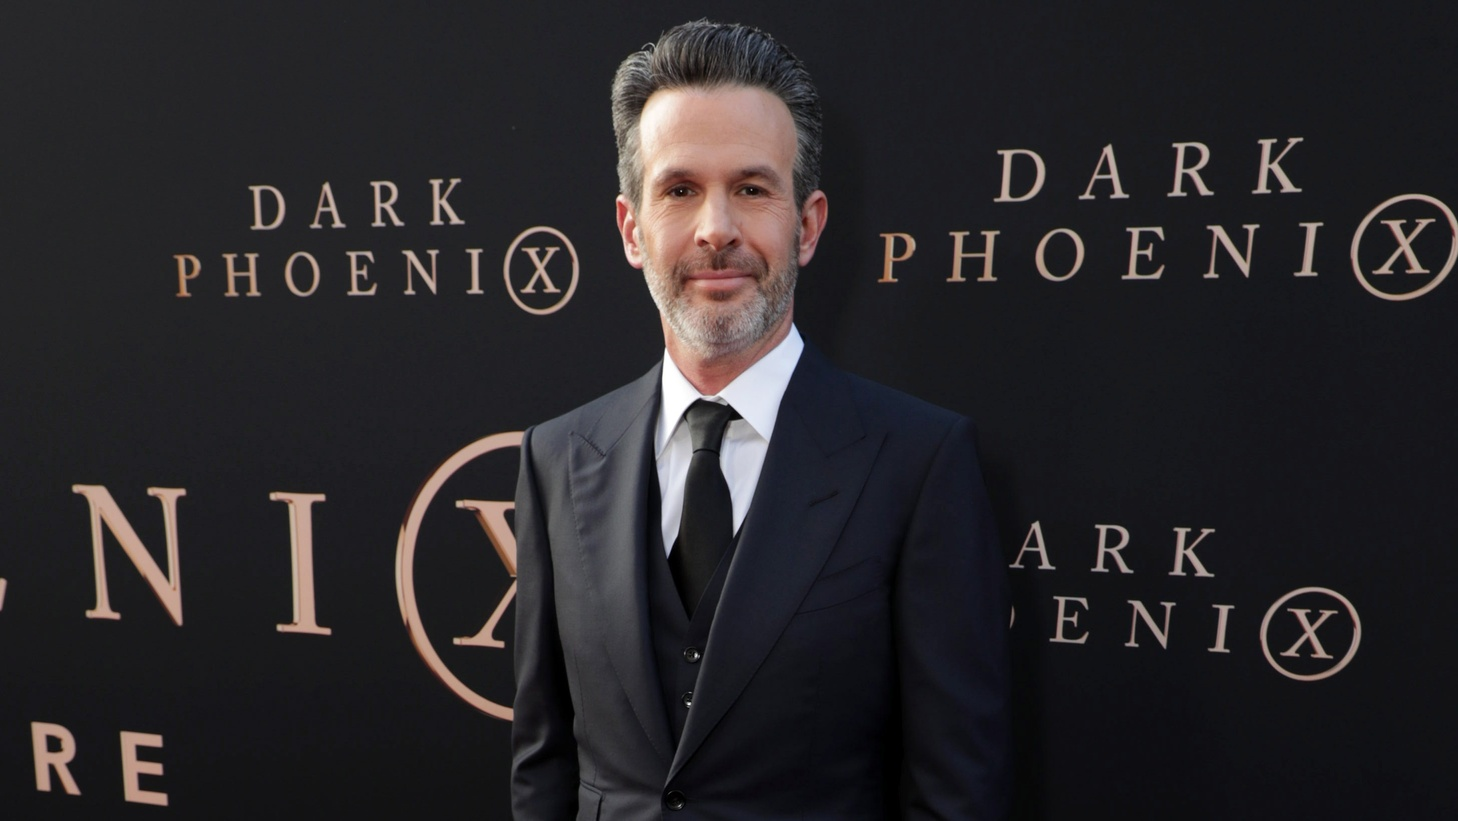 Director Simon Kinberg at the premiere of DARK PHOENIX.